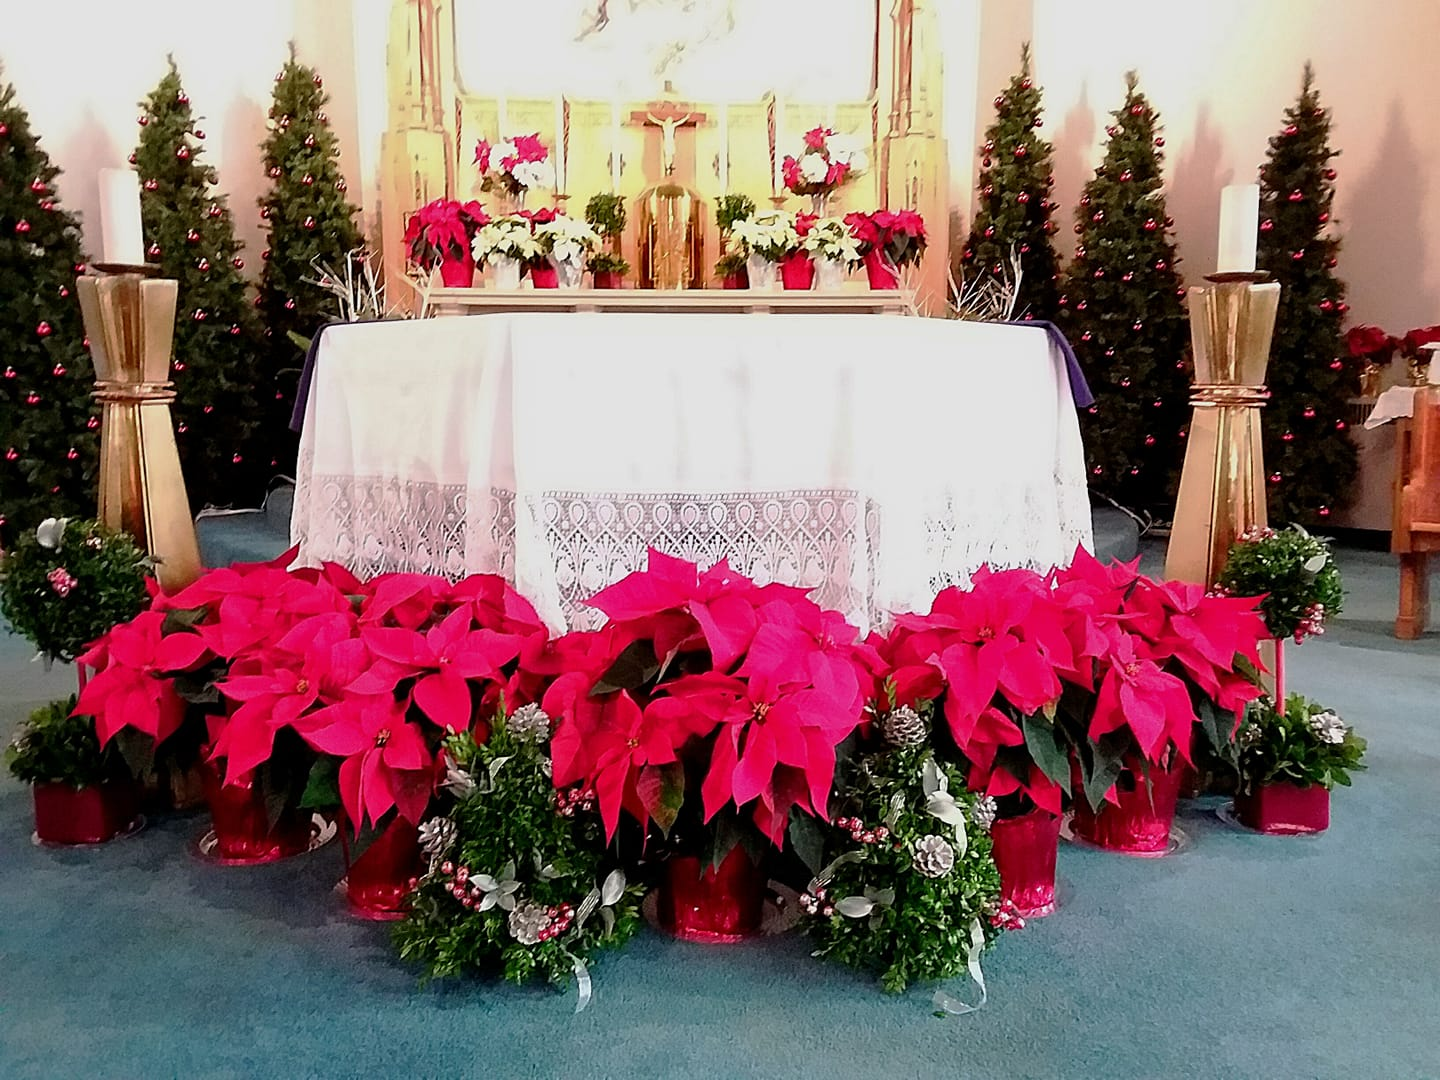 Immaculate Altar Christmas 2019